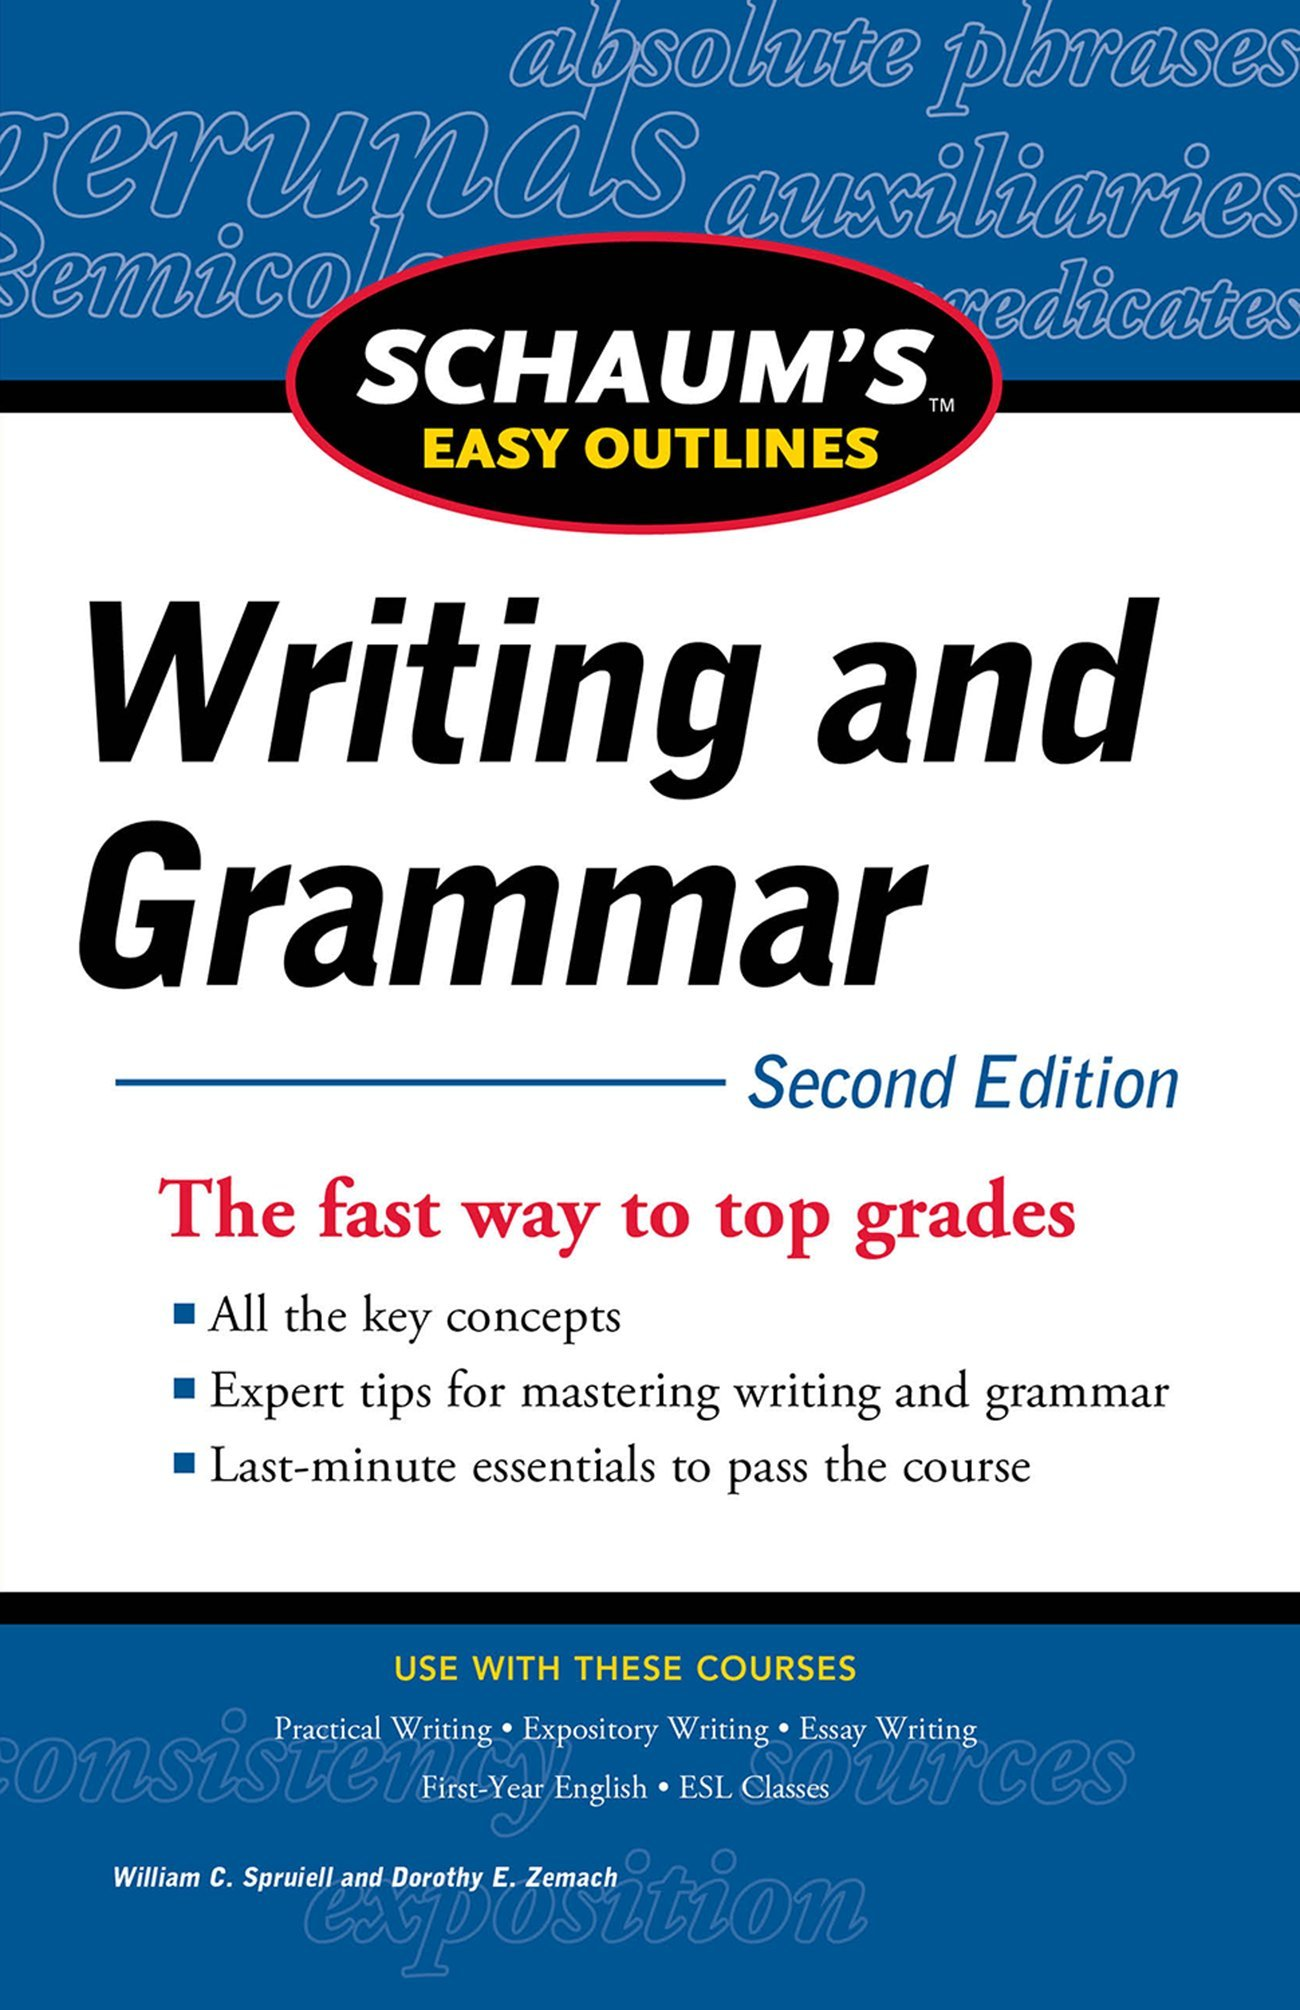 Schaum's Easy Outline of Writing and Grammar; Second Edition (Schaum's Easy Outlines)